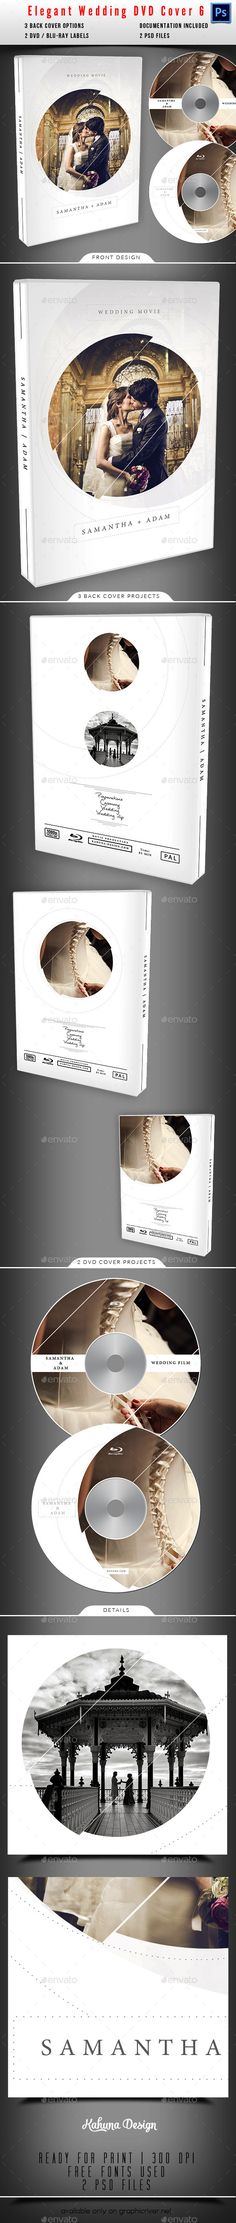 Wedding DVD / BluRay Cover 06 — Photoshop PSD #wedding cover #blu-ray • Available here → https://graphicriver.net/item/wedding-dvd-bluray-cover-06/11395996?ref=pxcr